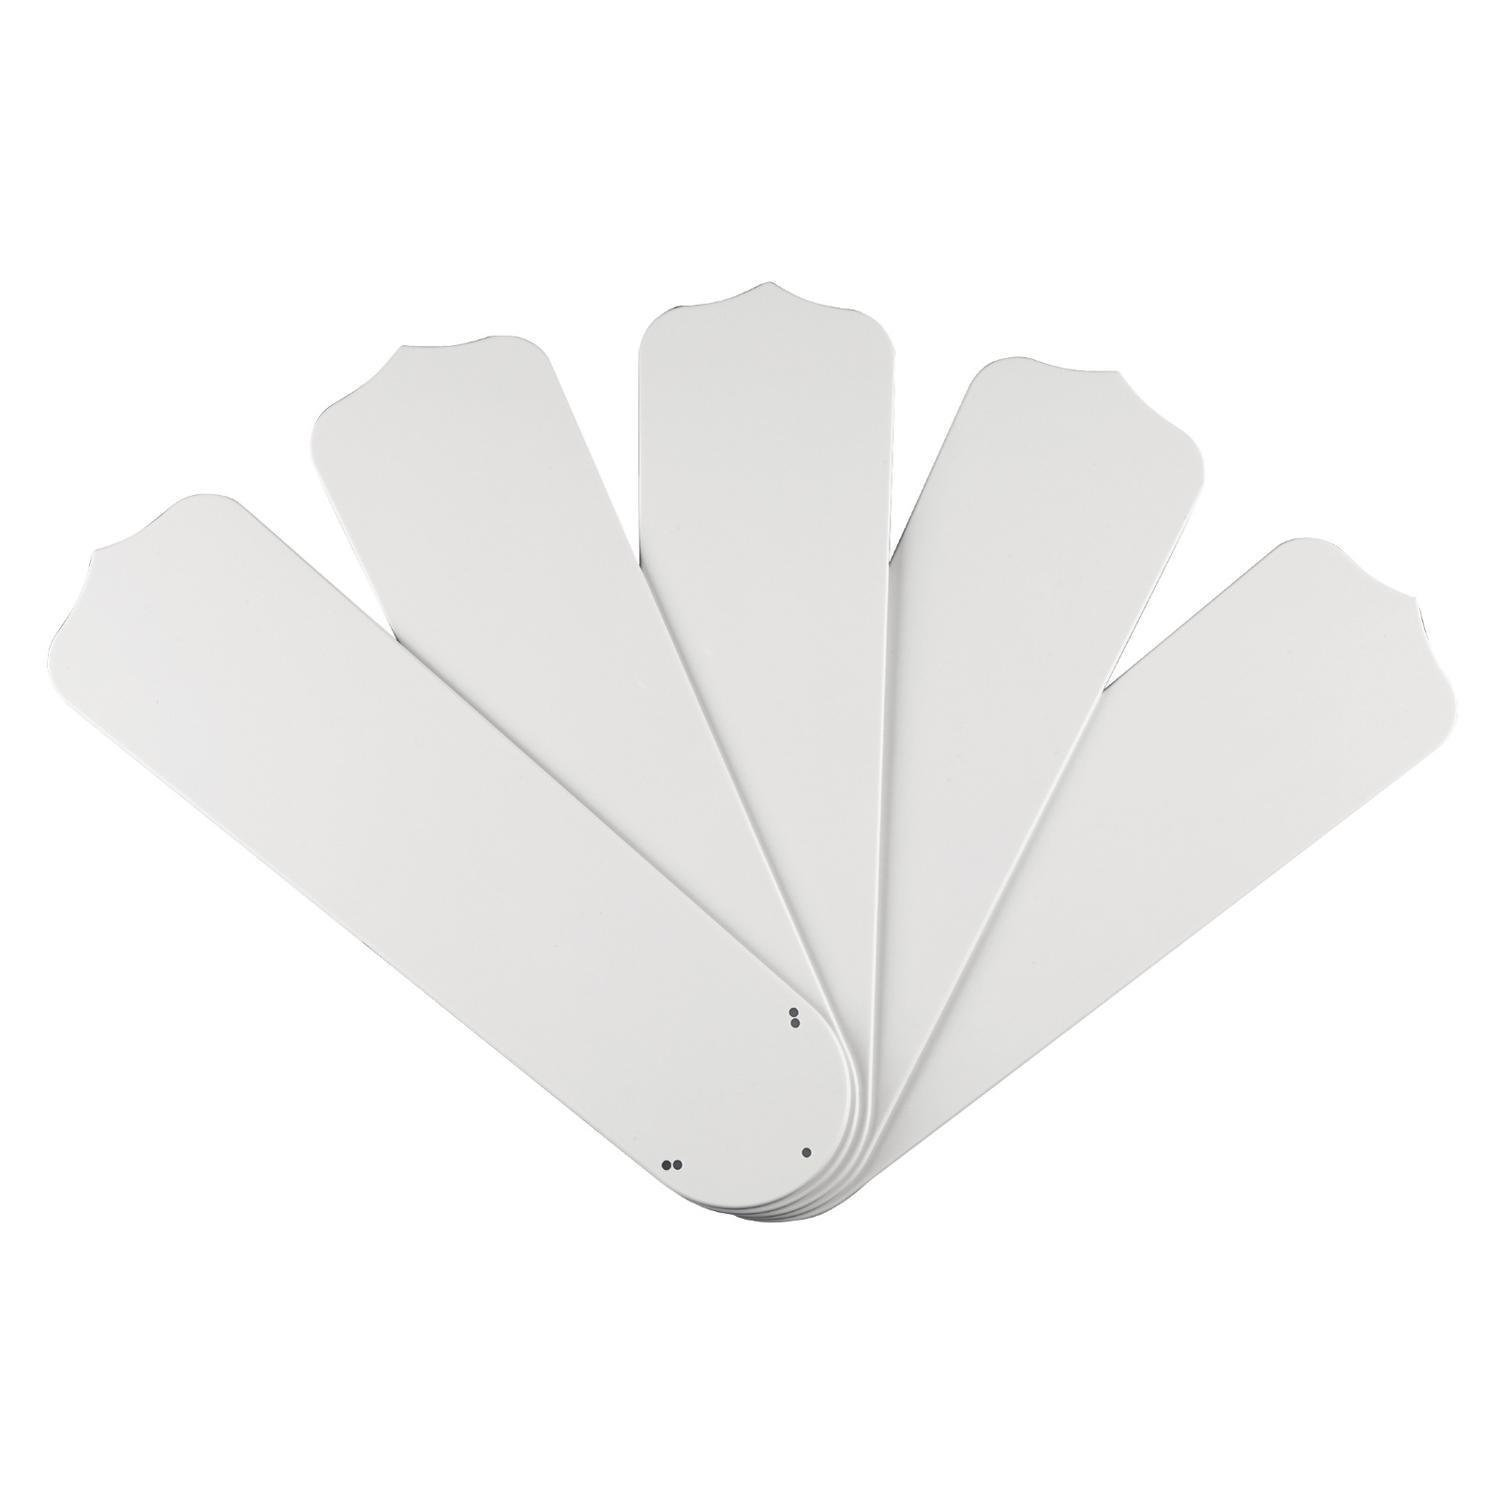 Westinghouse 7741400 Outdoor ABS Resin Fan Blades White (10 Blades) Westinghouse Lighting